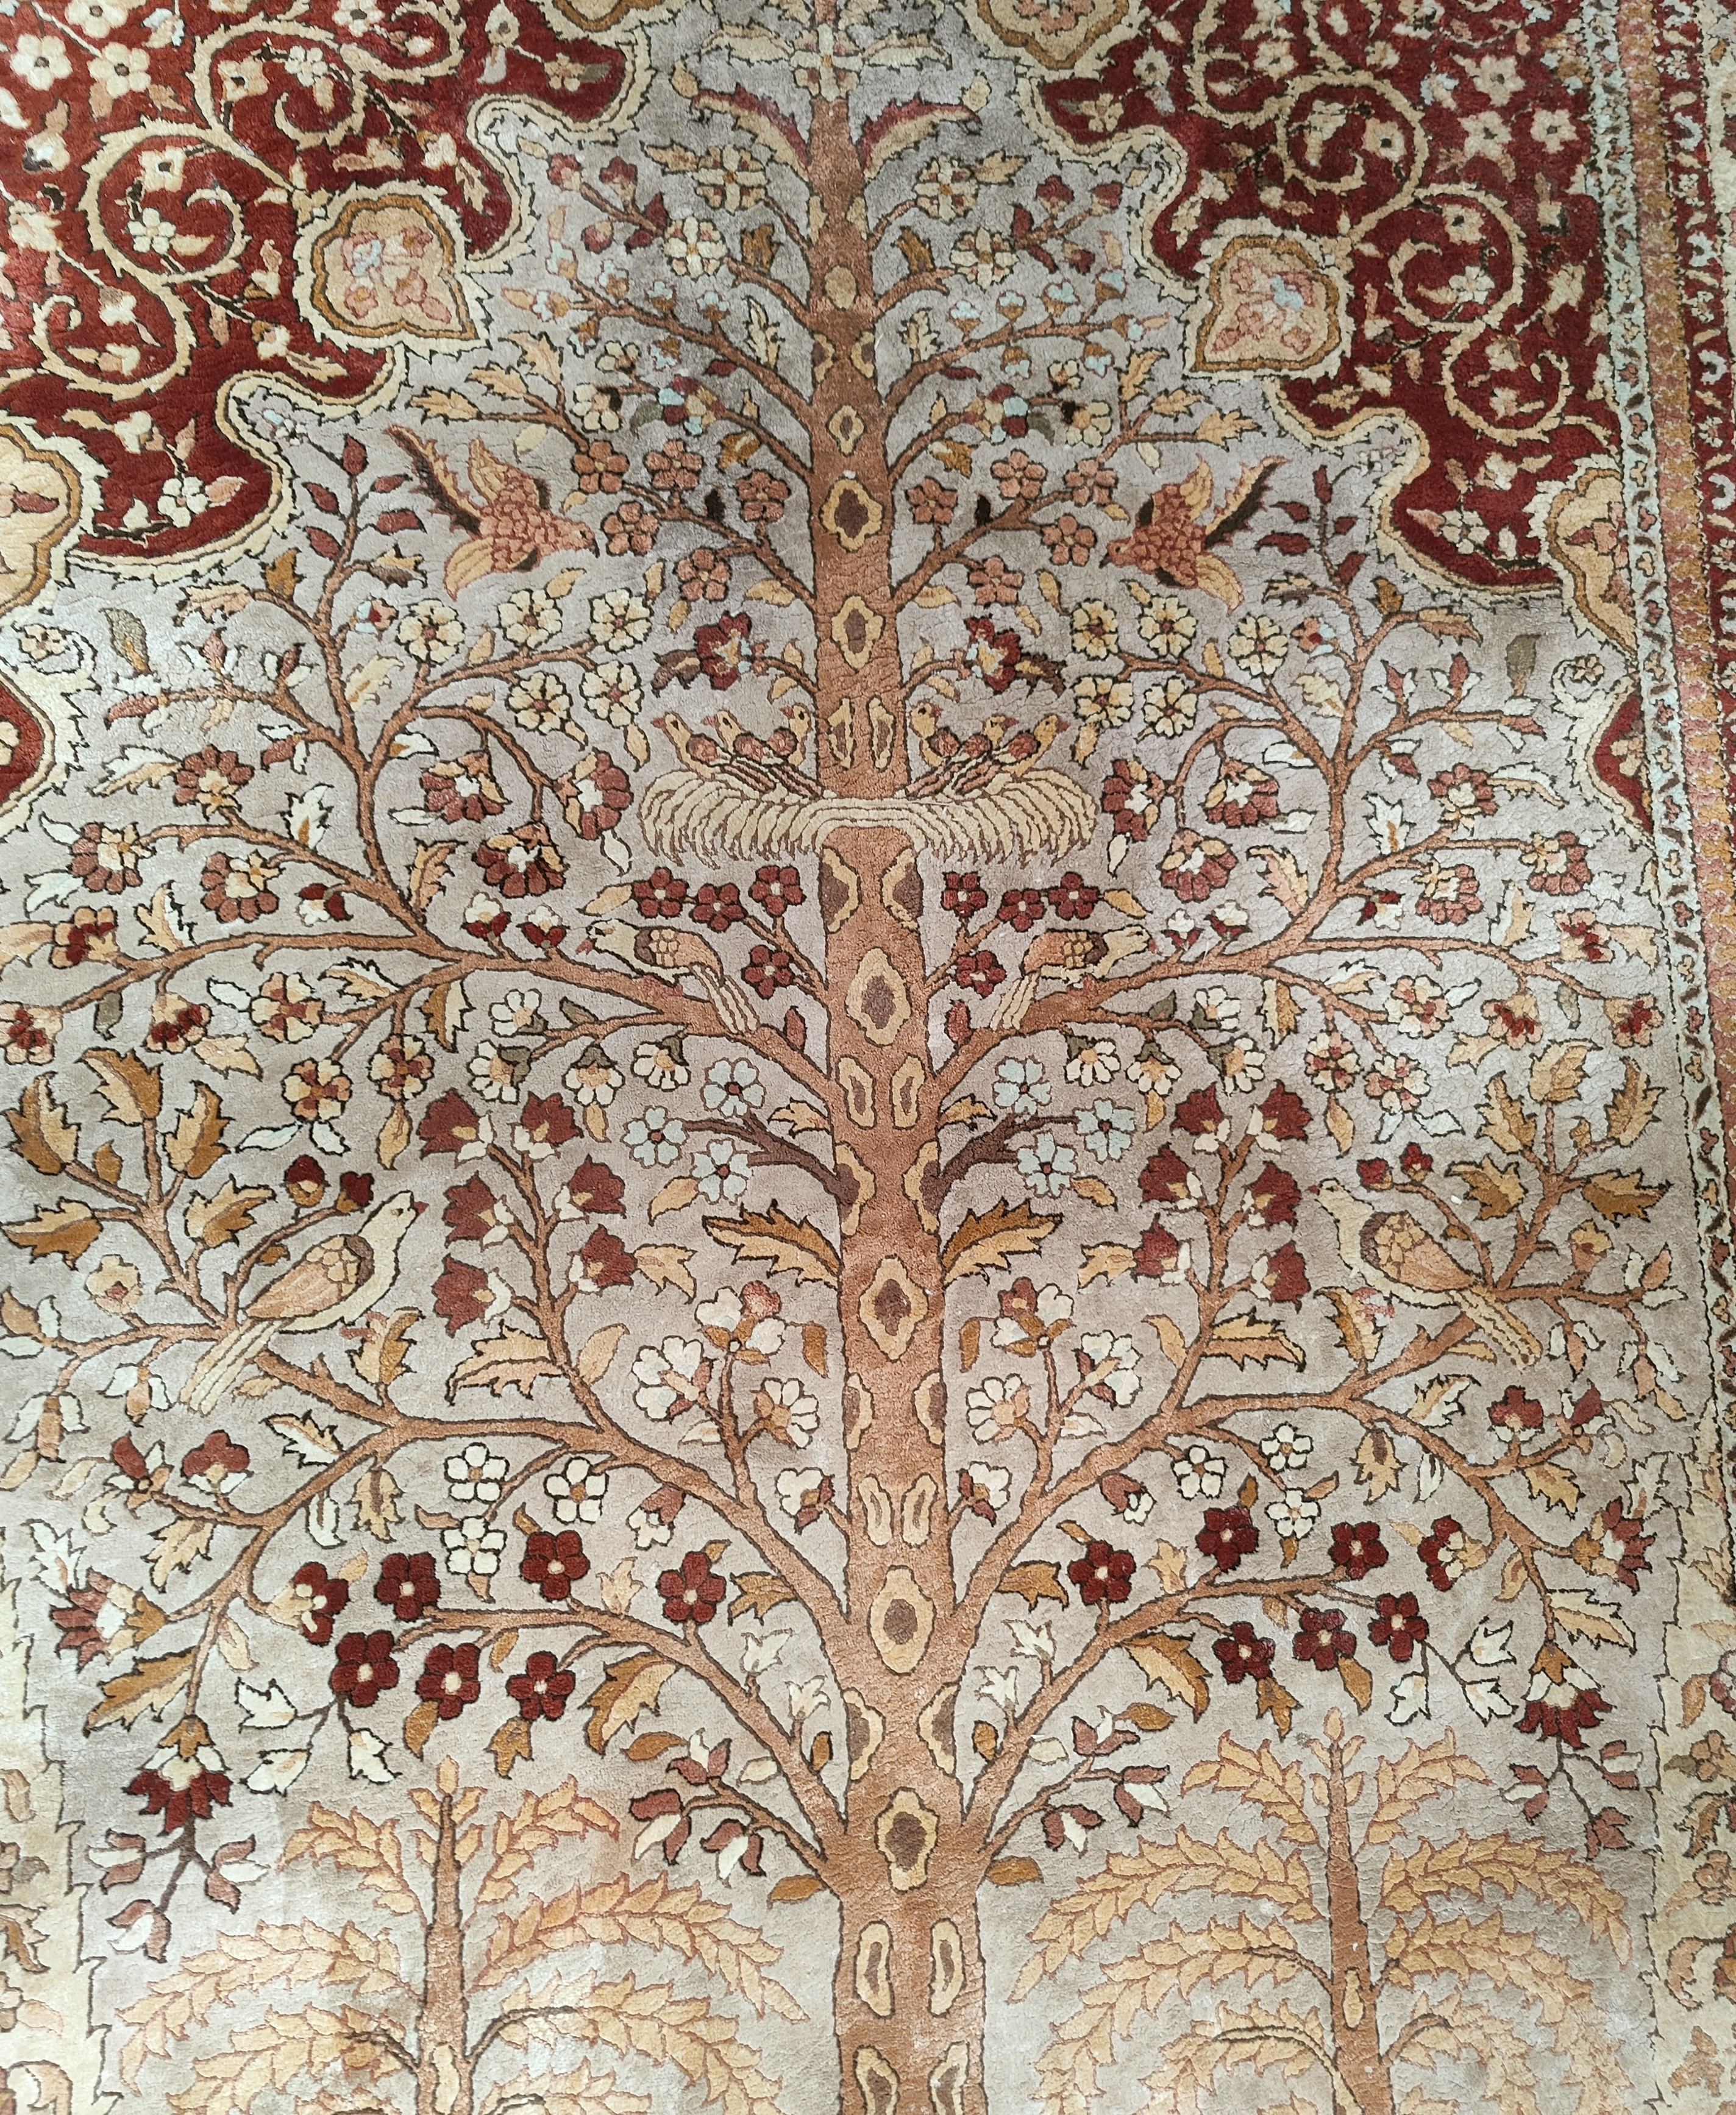 A mid 20th century Chinese silk carpet with Tree of Life pattern in the Persian manner, 6' x 9' - Image 2 of 4